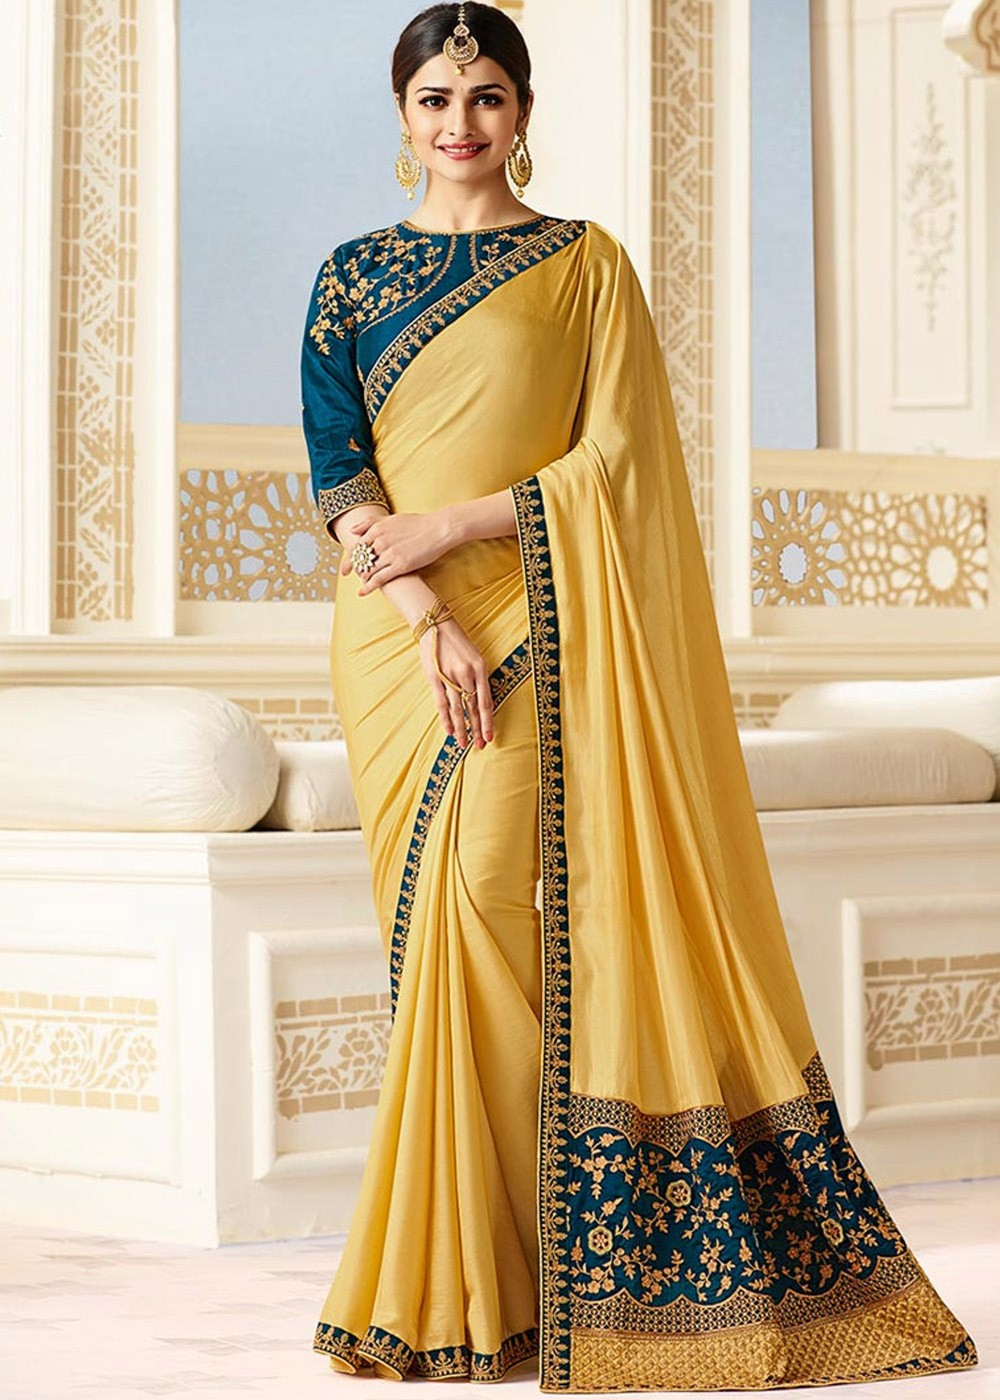 Gorgeous Indian Georgette Sarees Online at Panash India | free Classified | Free Advertising | free classified ads